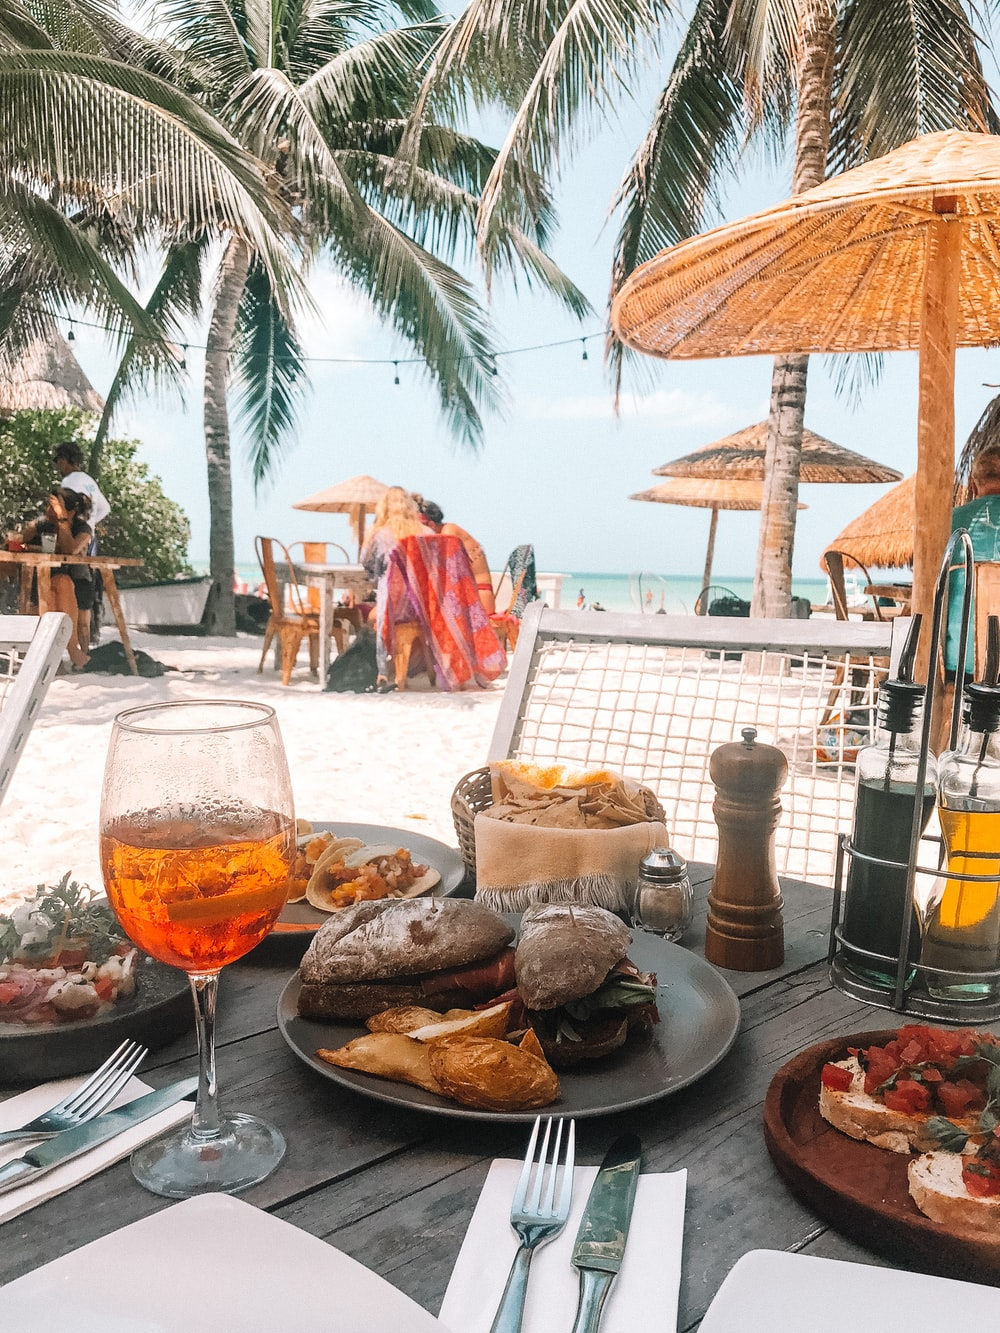 food on table at the beach during day